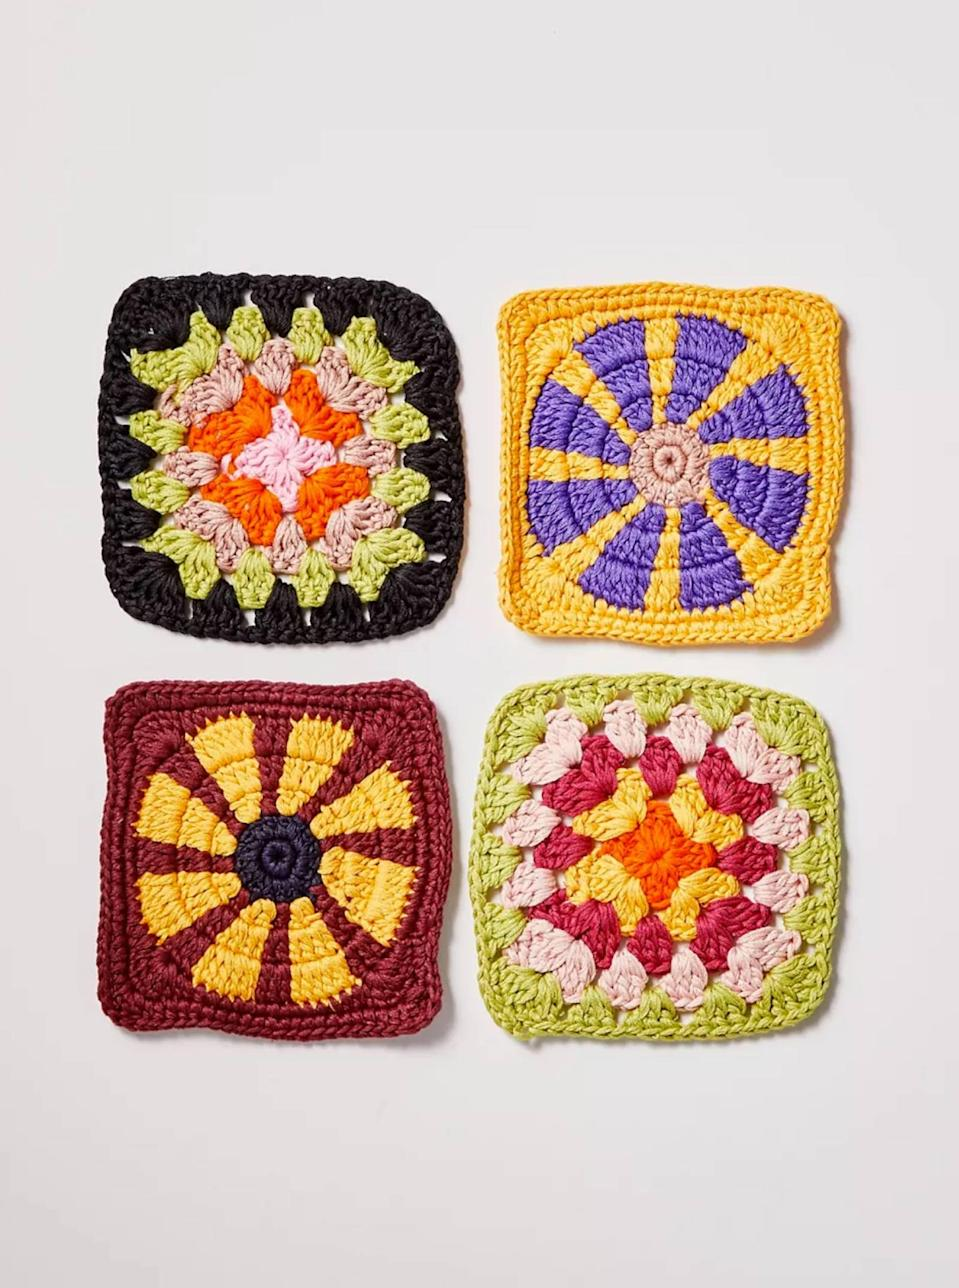 """Not quite ready to wear crochet? Bring it into your home with these cute and colorful coasters that will keep your <a href=""""https://www.glamour.com/story/haus-aperitif-review?mbid=synd_yahoo_rss"""" rel=""""nofollow noopener"""" target=""""_blank"""" data-ylk=""""slk:favorite beverages"""" class=""""link rapid-noclick-resp"""">favorite beverages</a> from marking up your furniture. $8, Urban Outfitters. <a href=""""https://www.urbanoutfitters.com/shop/crochet-coaster?"""" rel=""""nofollow noopener"""" target=""""_blank"""" data-ylk=""""slk:Get it now!"""" class=""""link rapid-noclick-resp"""">Get it now!</a>"""